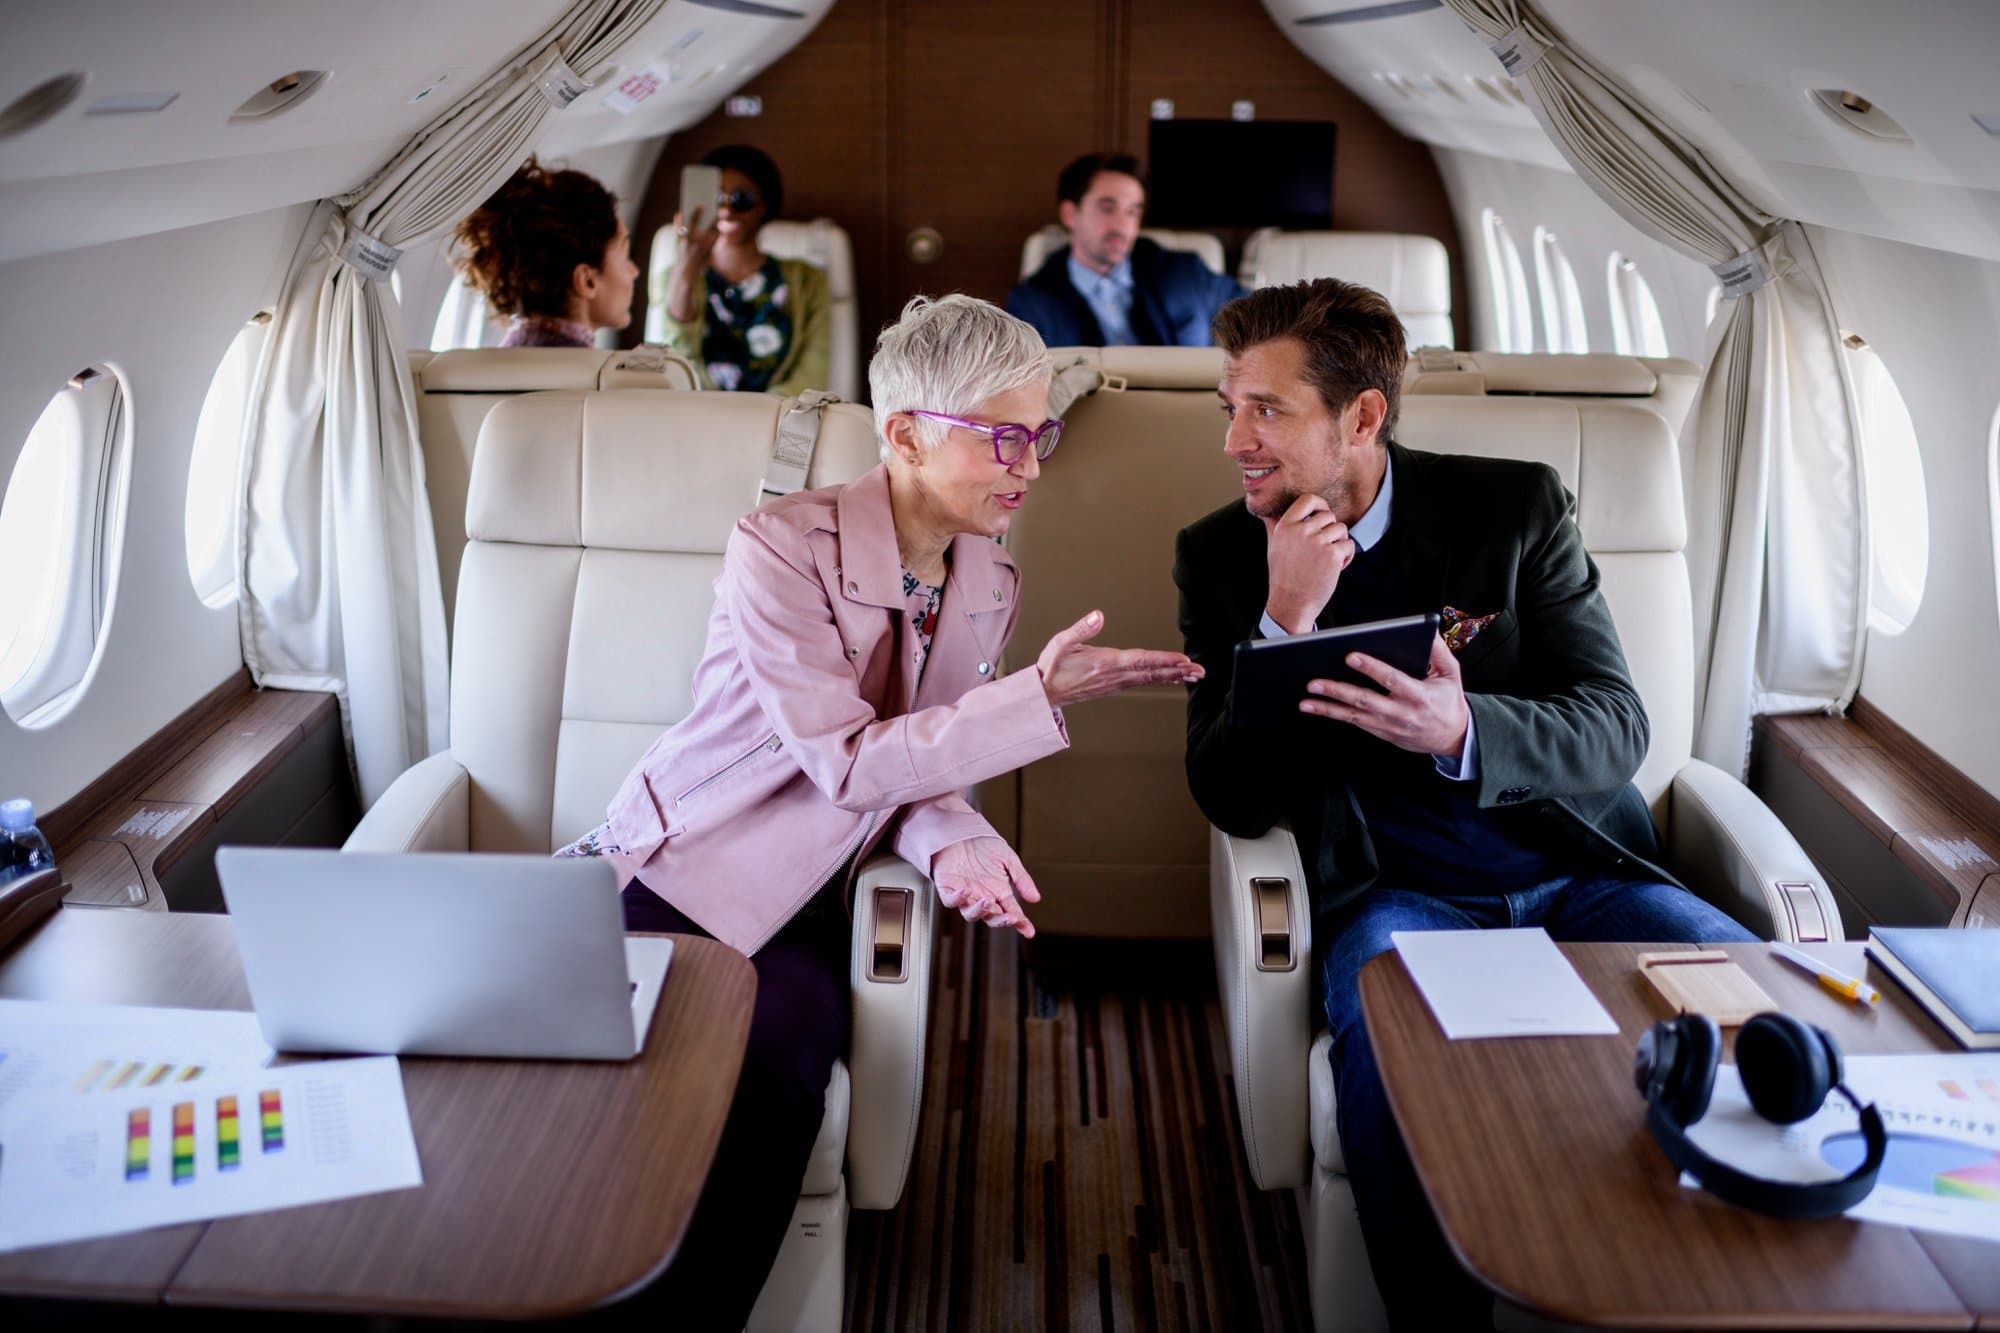 Uber of the Skies, is it Impossible? Absolutely not. Here's why.